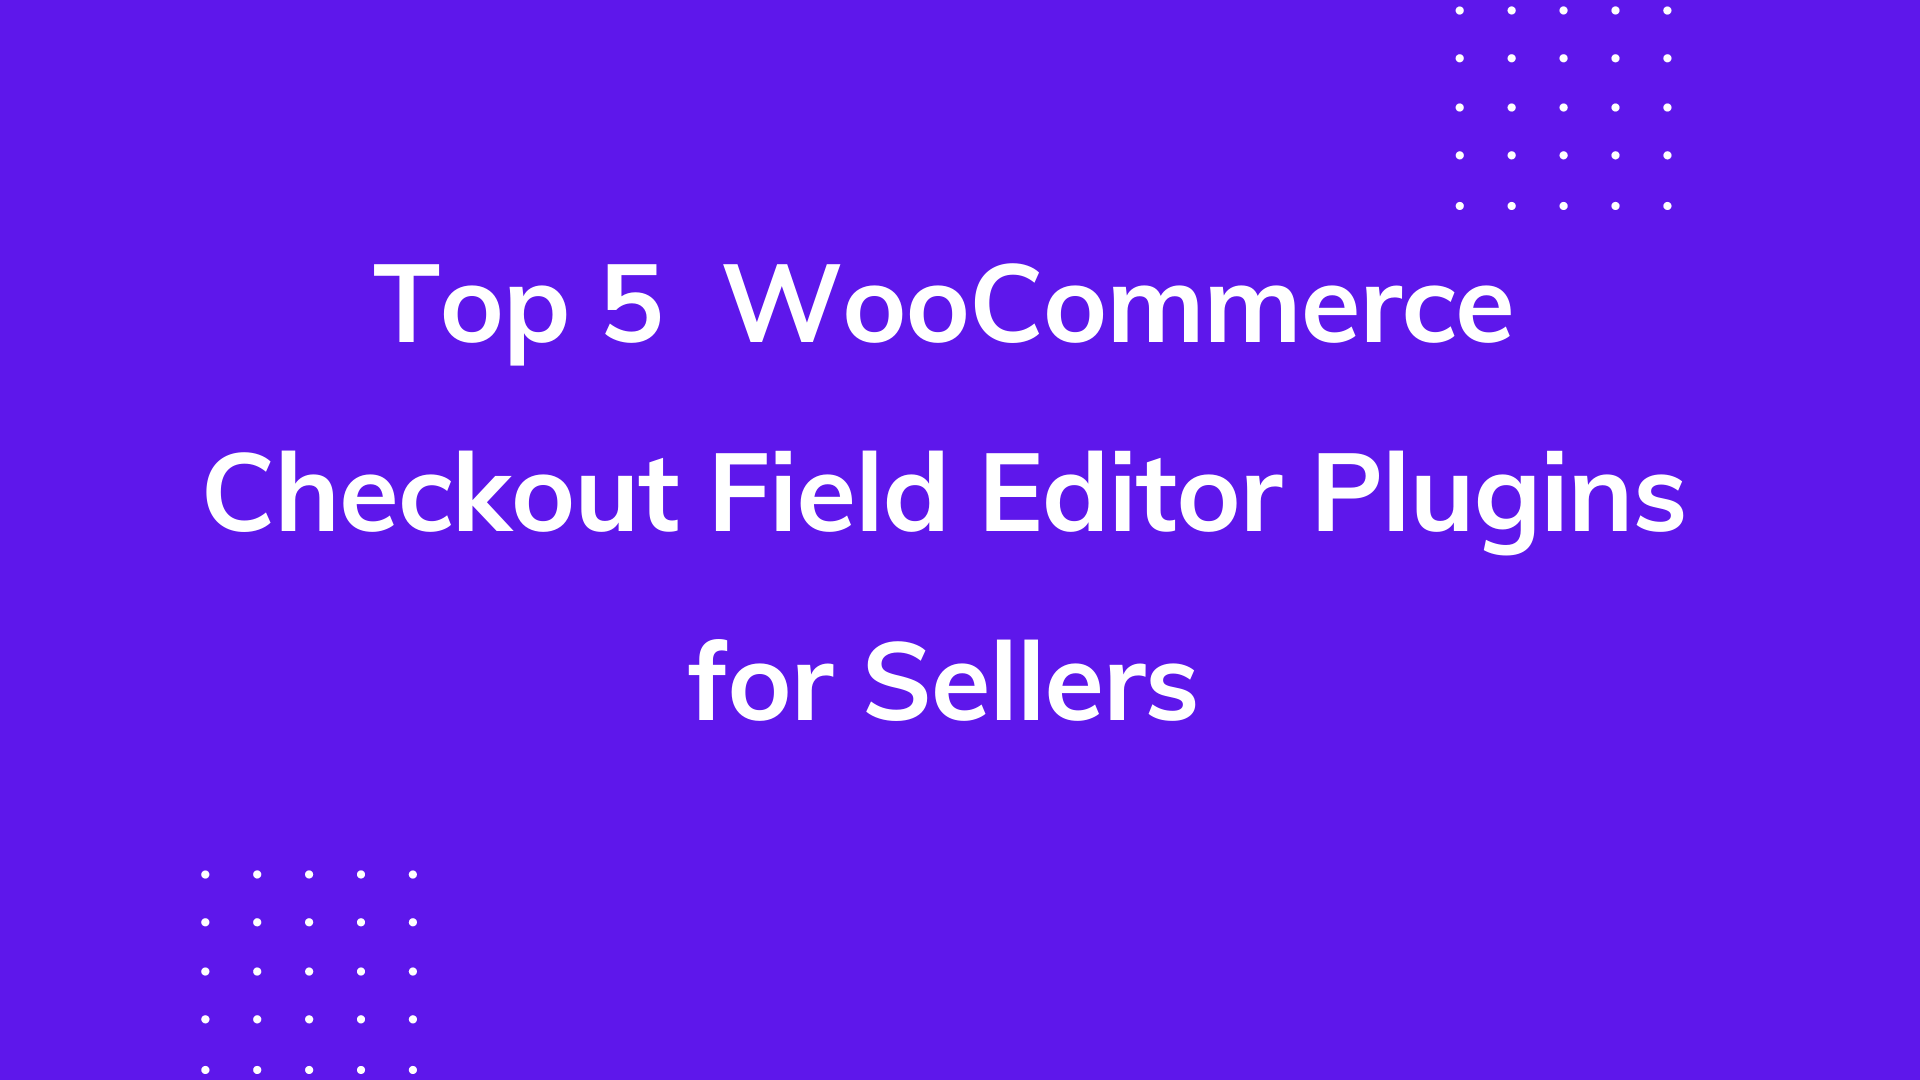 Top 5 WooCommerce Checkout Field Editor Plugins for Sellers